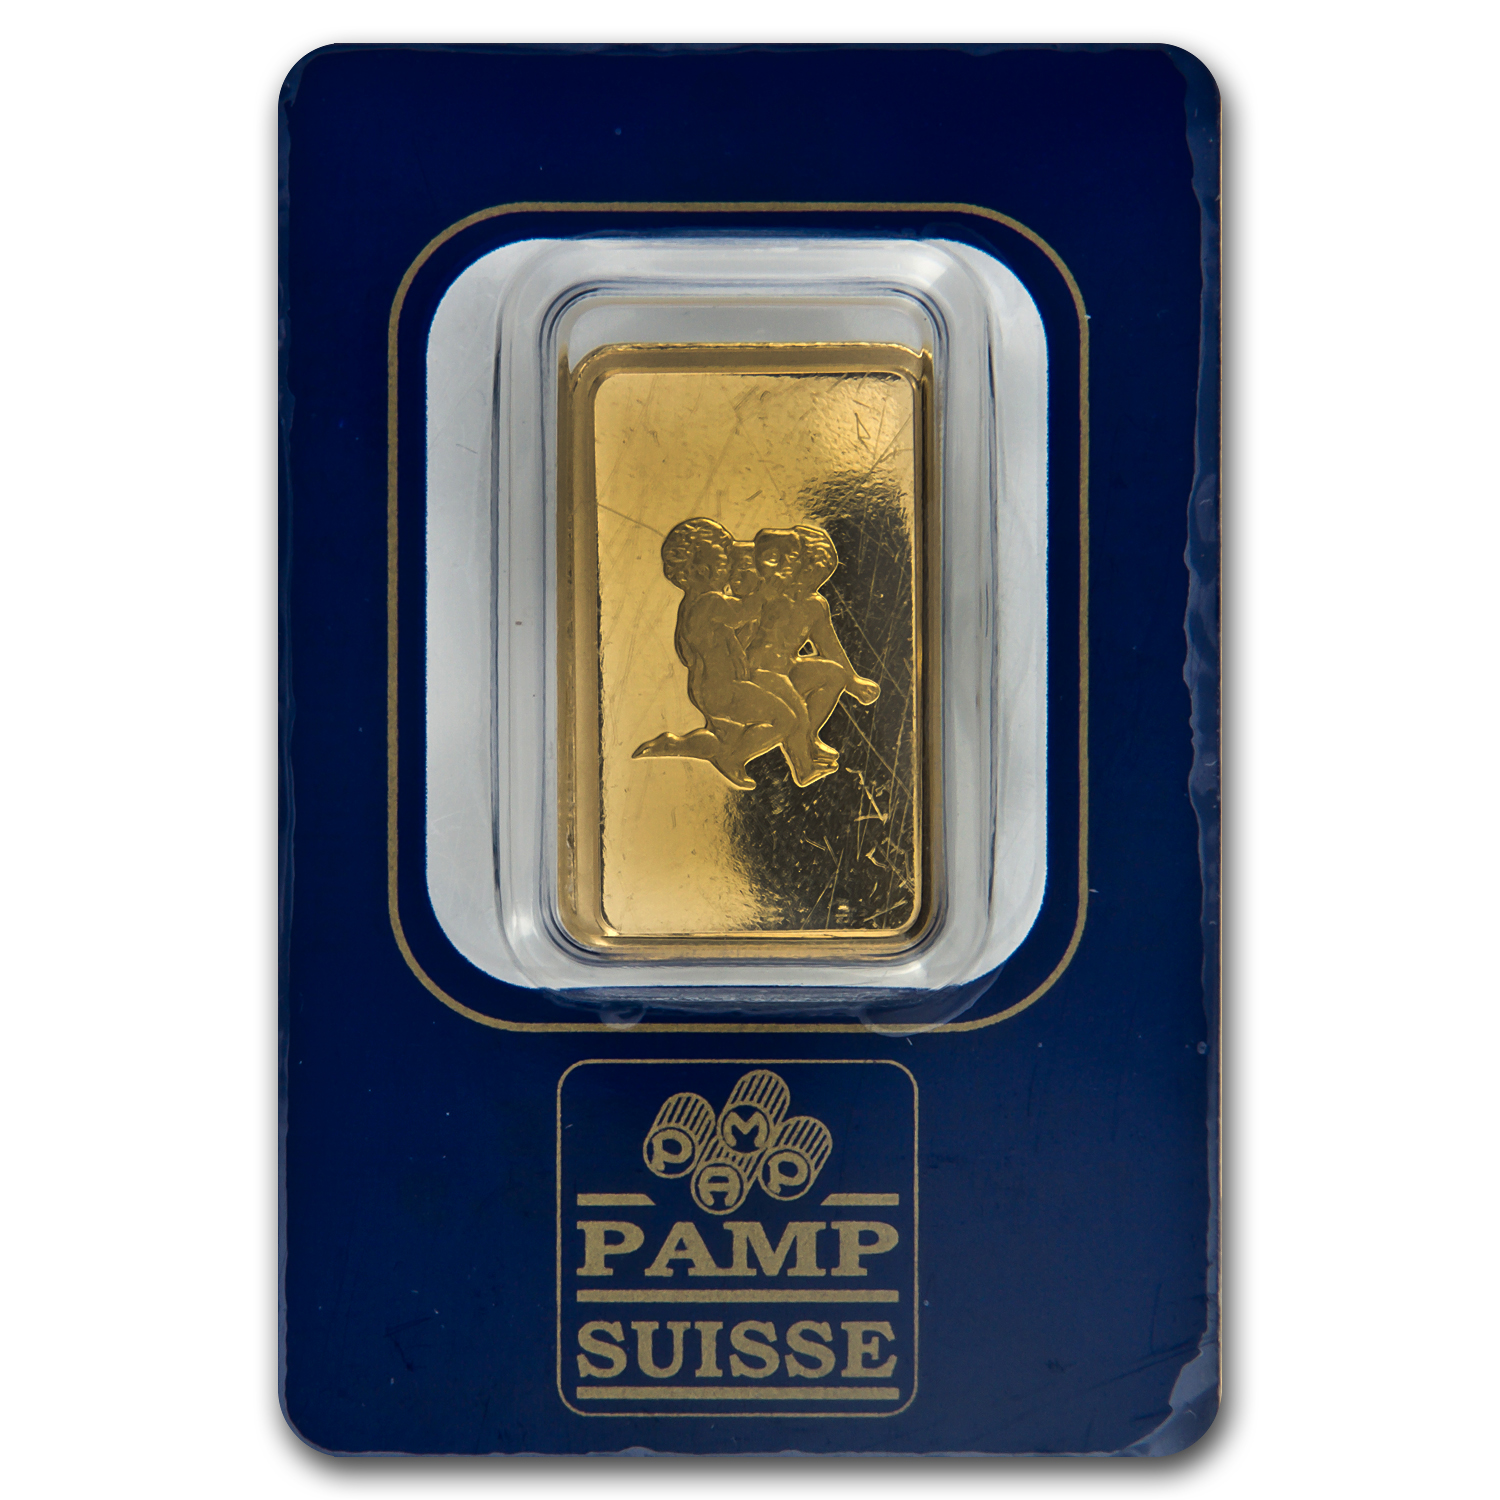 10 gram Gold Bars - Pamp Suisse (Gemini the Twins, in assay)